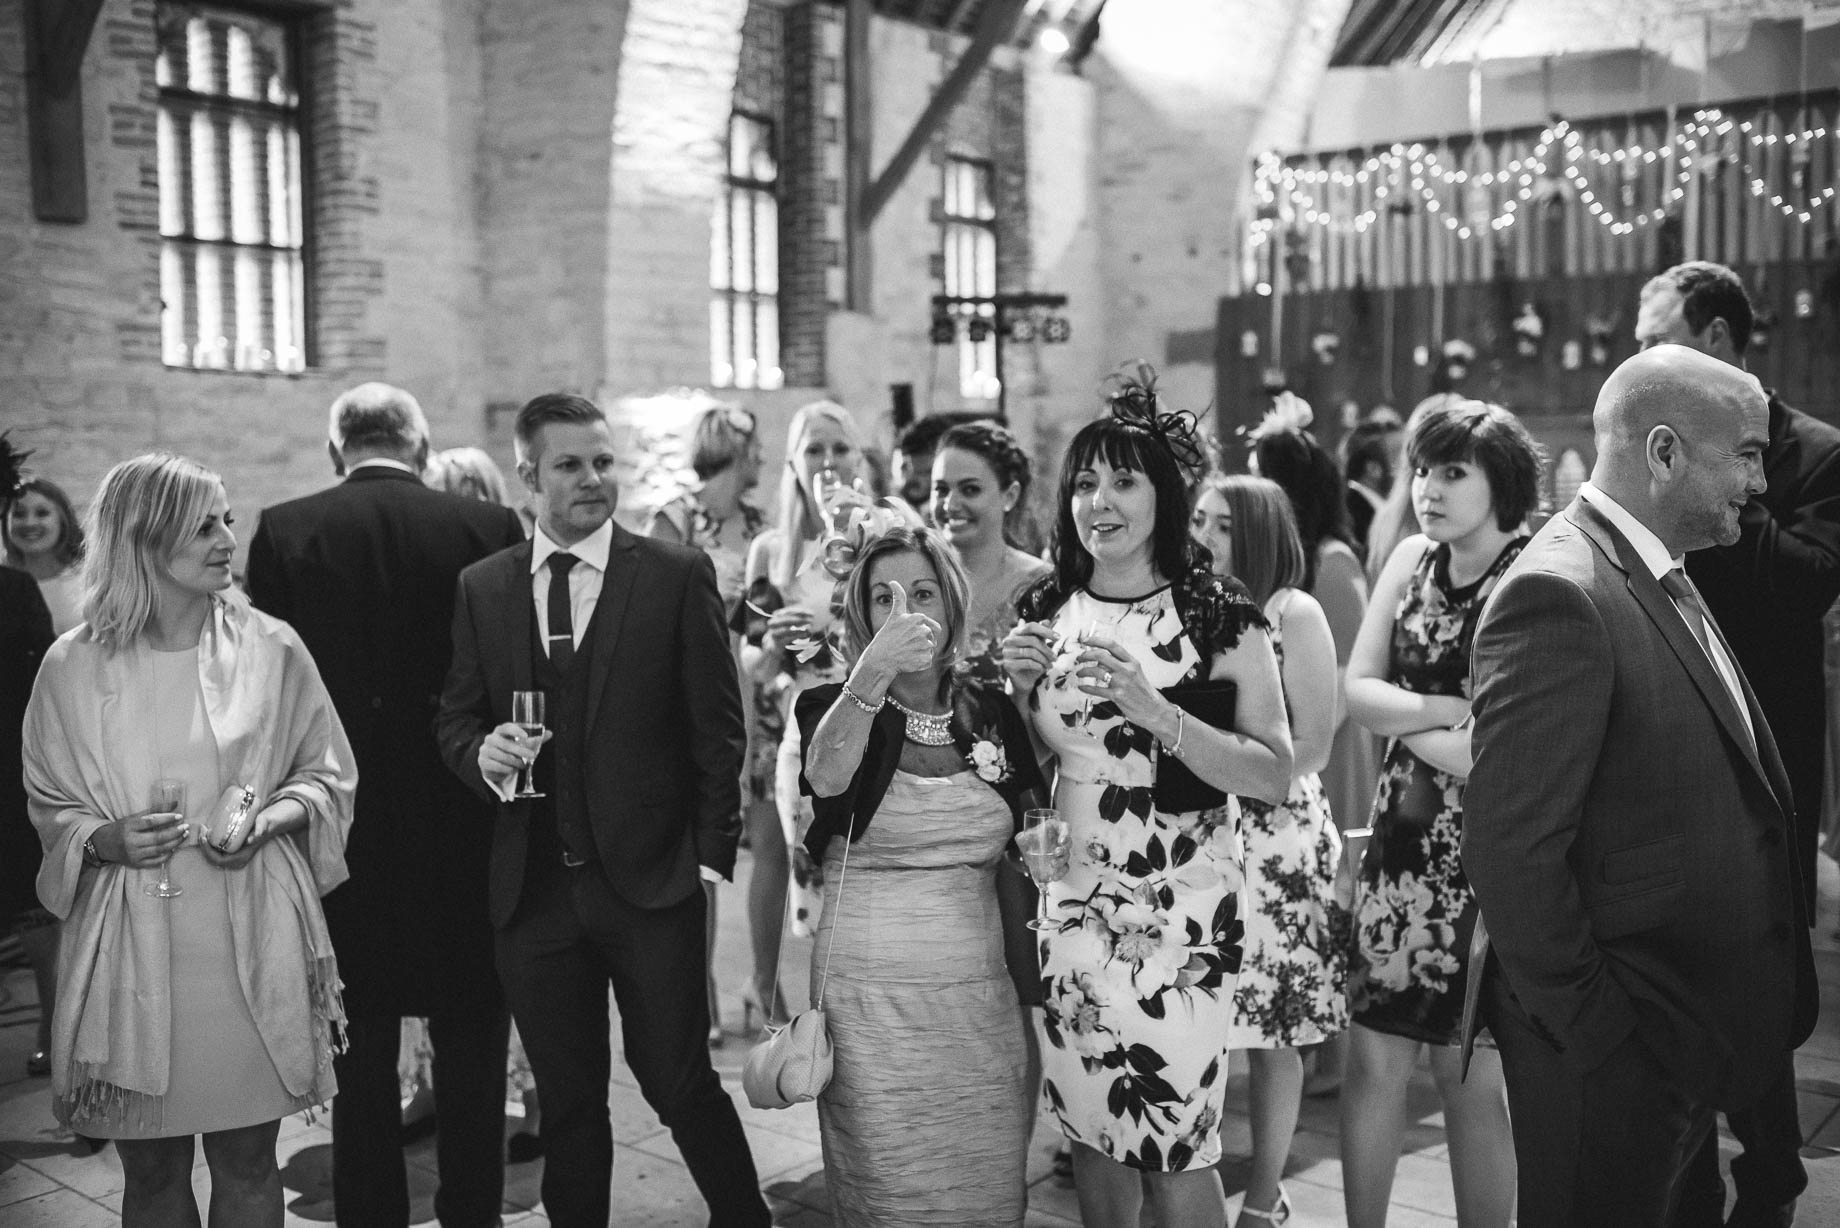 Tithe Barn wedding photography - Jayme and David (142 of 189)